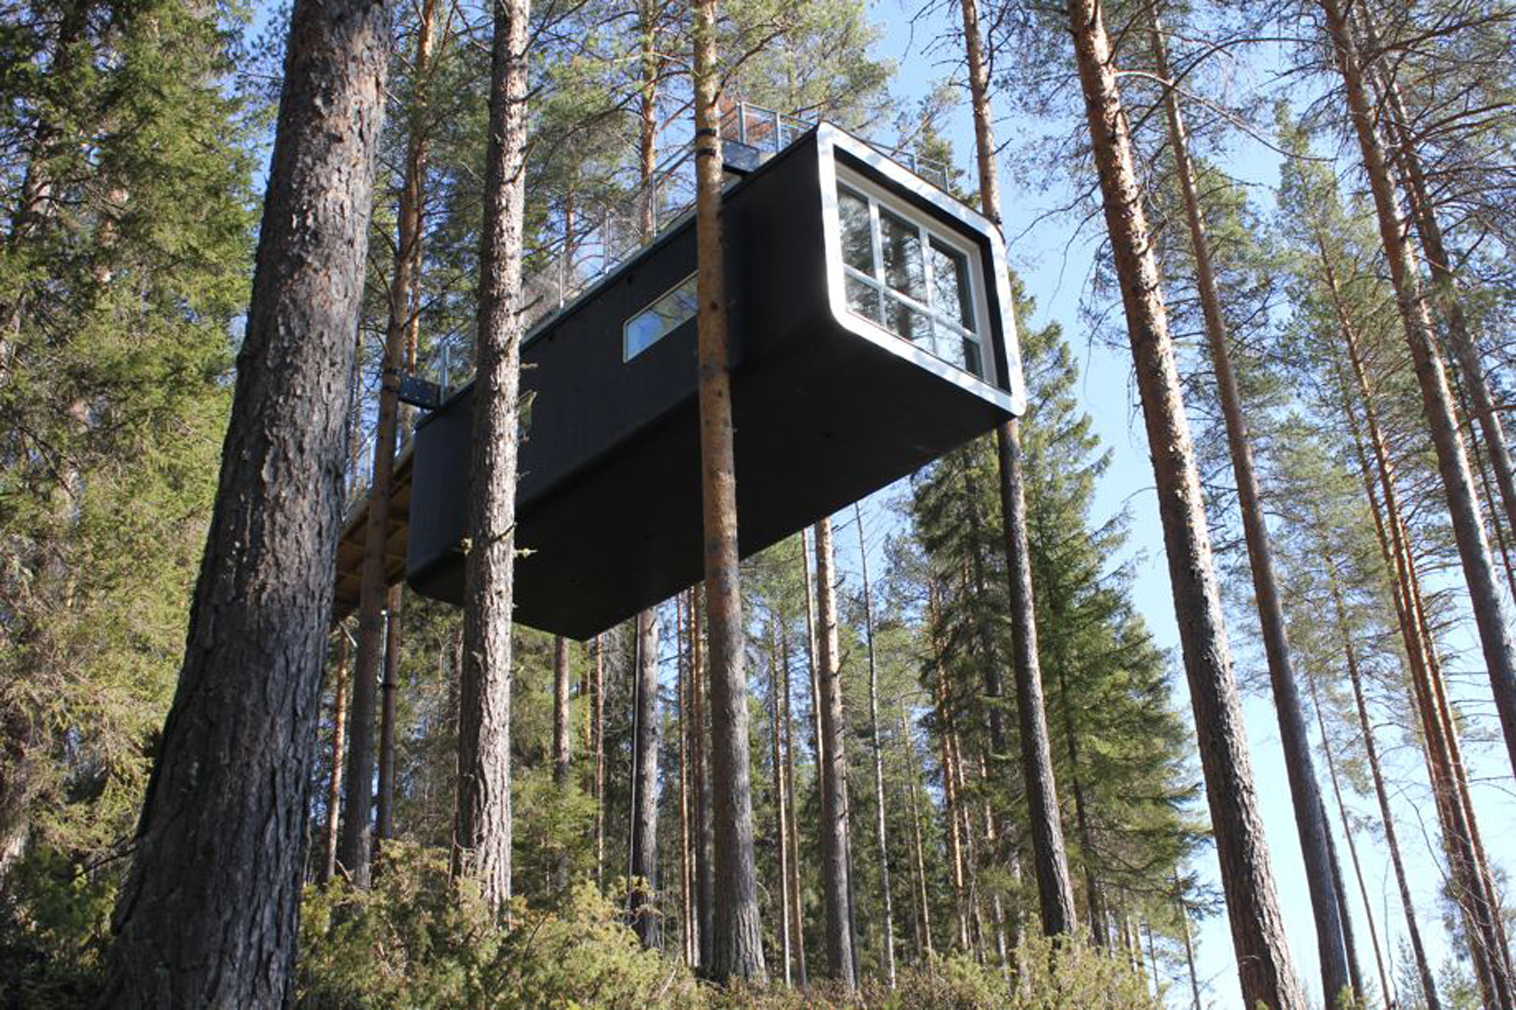 Spectacular Treehouses Stay Summer Spaces